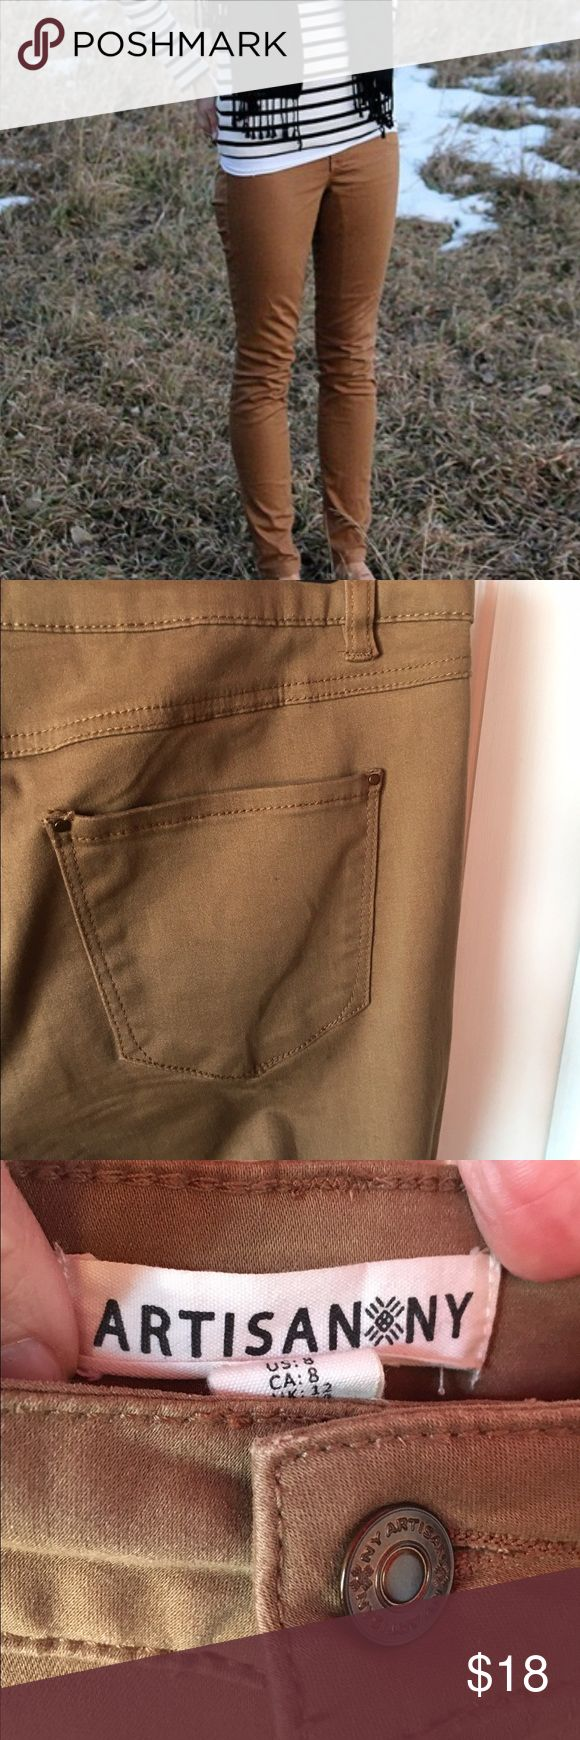 🎉HP🎉Brown jeans Artisan NY mid to high rise brown skinny jeans These jeans are super soft and stretchy made of 71% cotton, 27% viscose and 2% spandex. So comfortable on.   These jeans are between mid to high rise. I am 5'6 and the waist comes just below my belly button. Excellent condition. No flaws. Worn once! Artisan NY Jeans Skinny